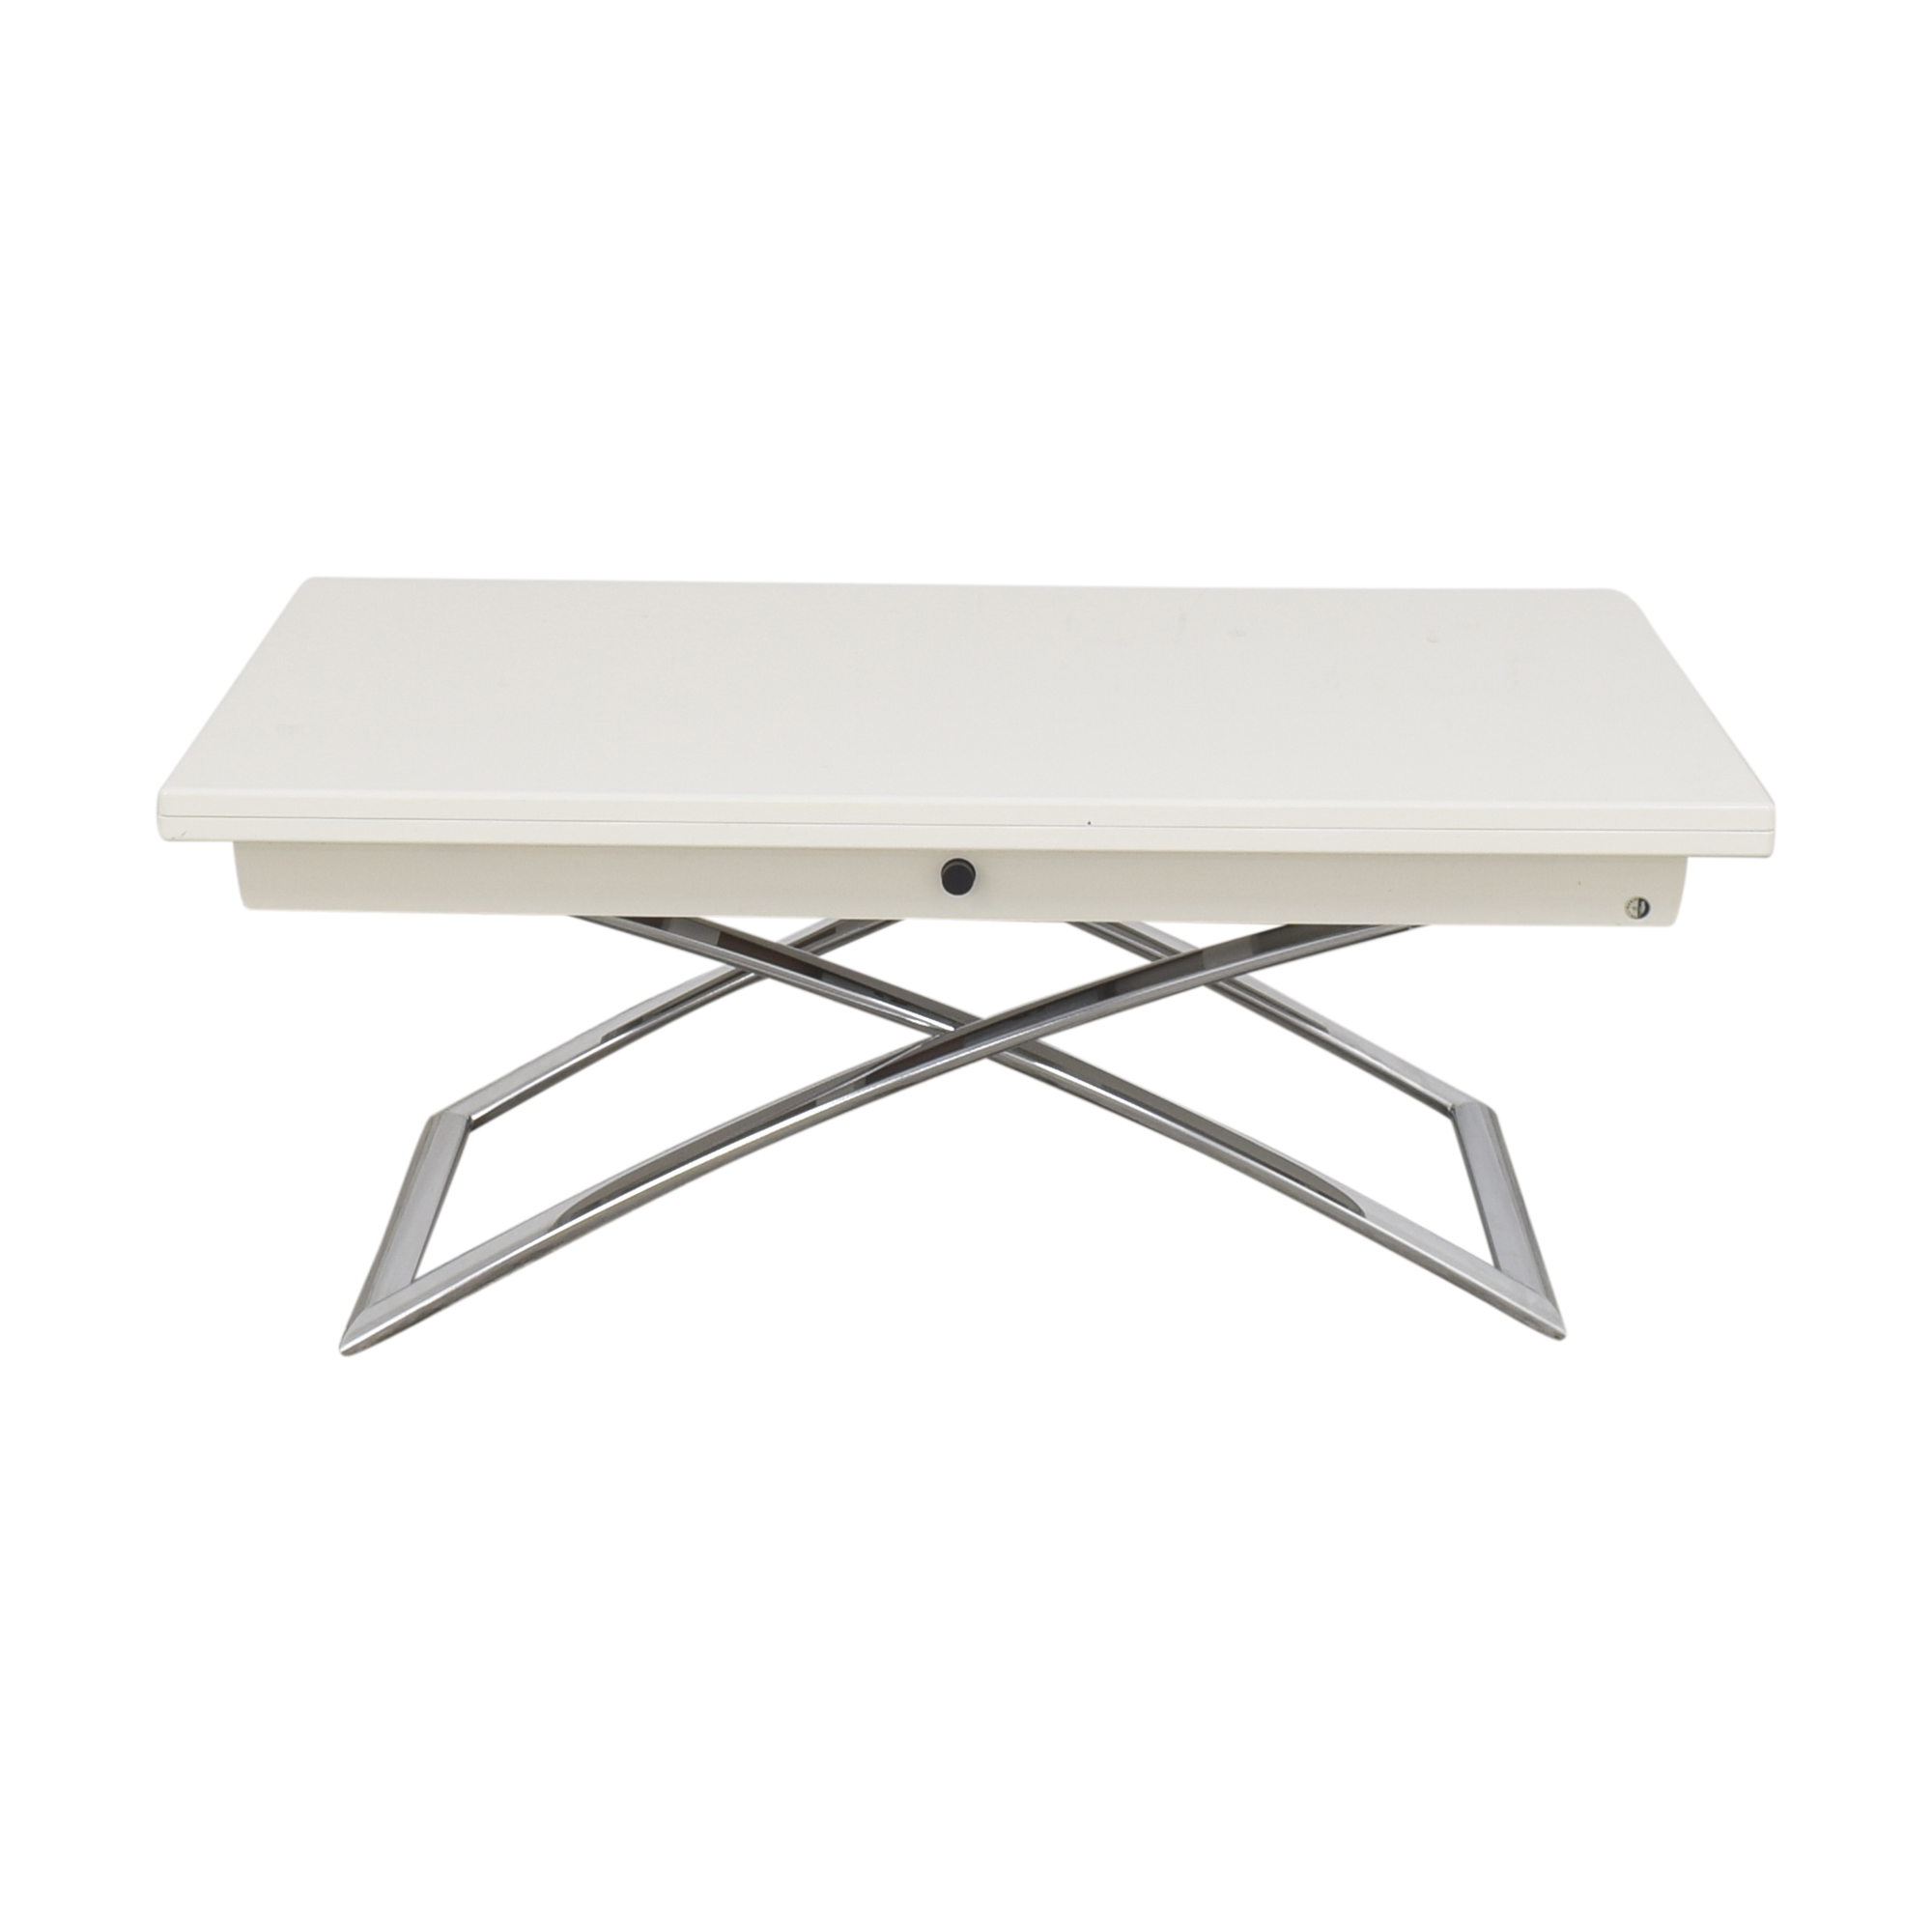 Calligaris Calligaris Convertible Coffee to Dining Table used